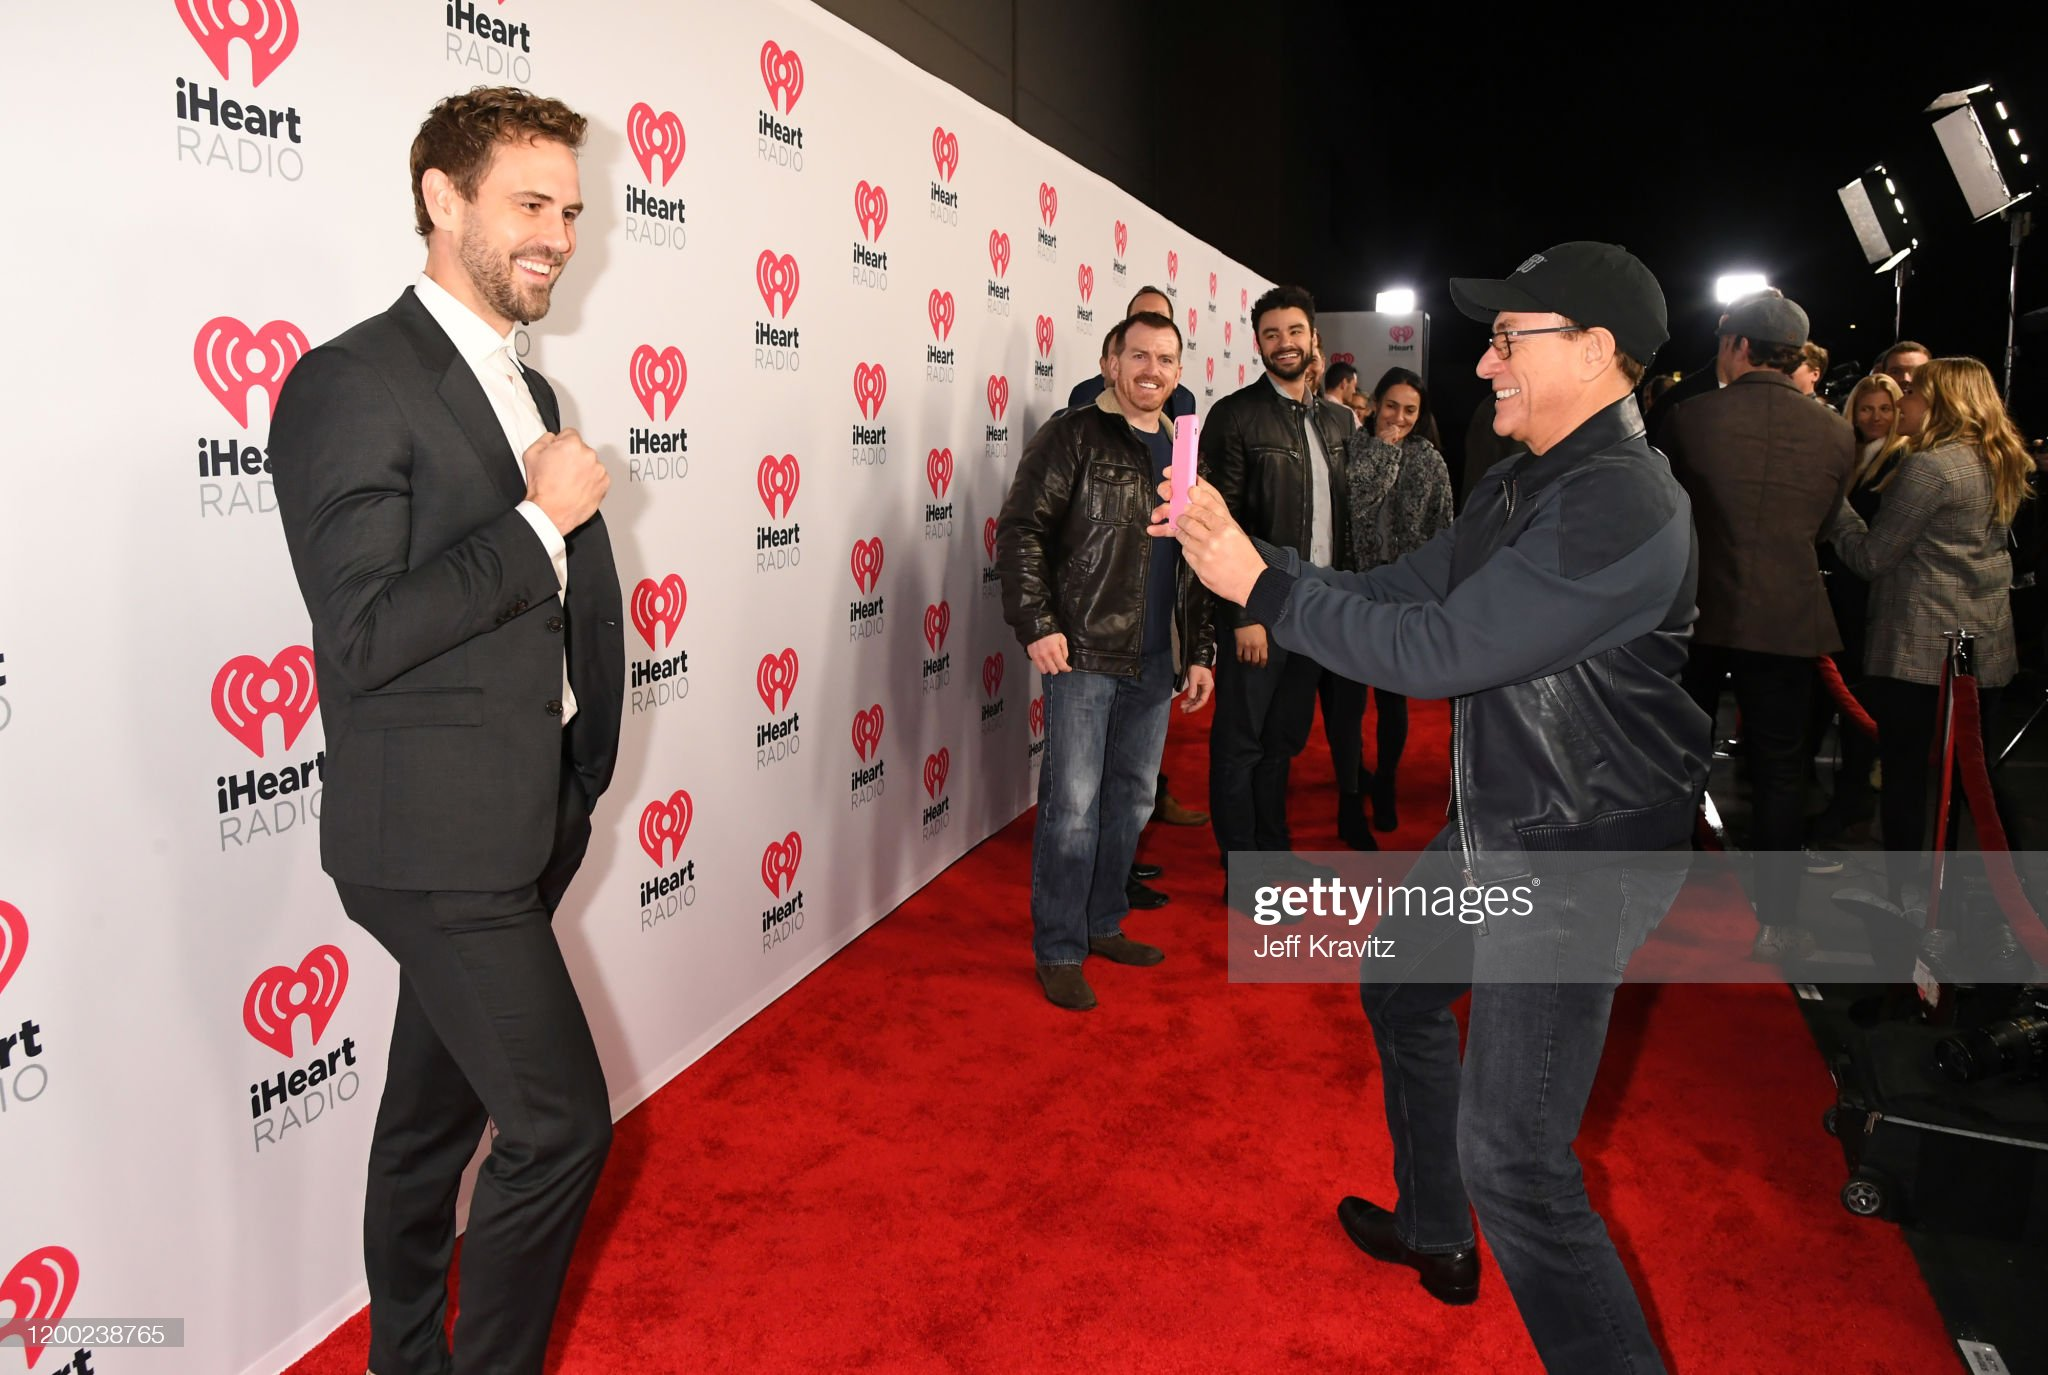 Nick Viall - Bachelor 21 - FAN Forum - Discussion #27 - Page 69 Nick-viall-attends-the-2020-iheartradio-podcast-awards-at-the-on-picture-id1200238765?s=2048x2048